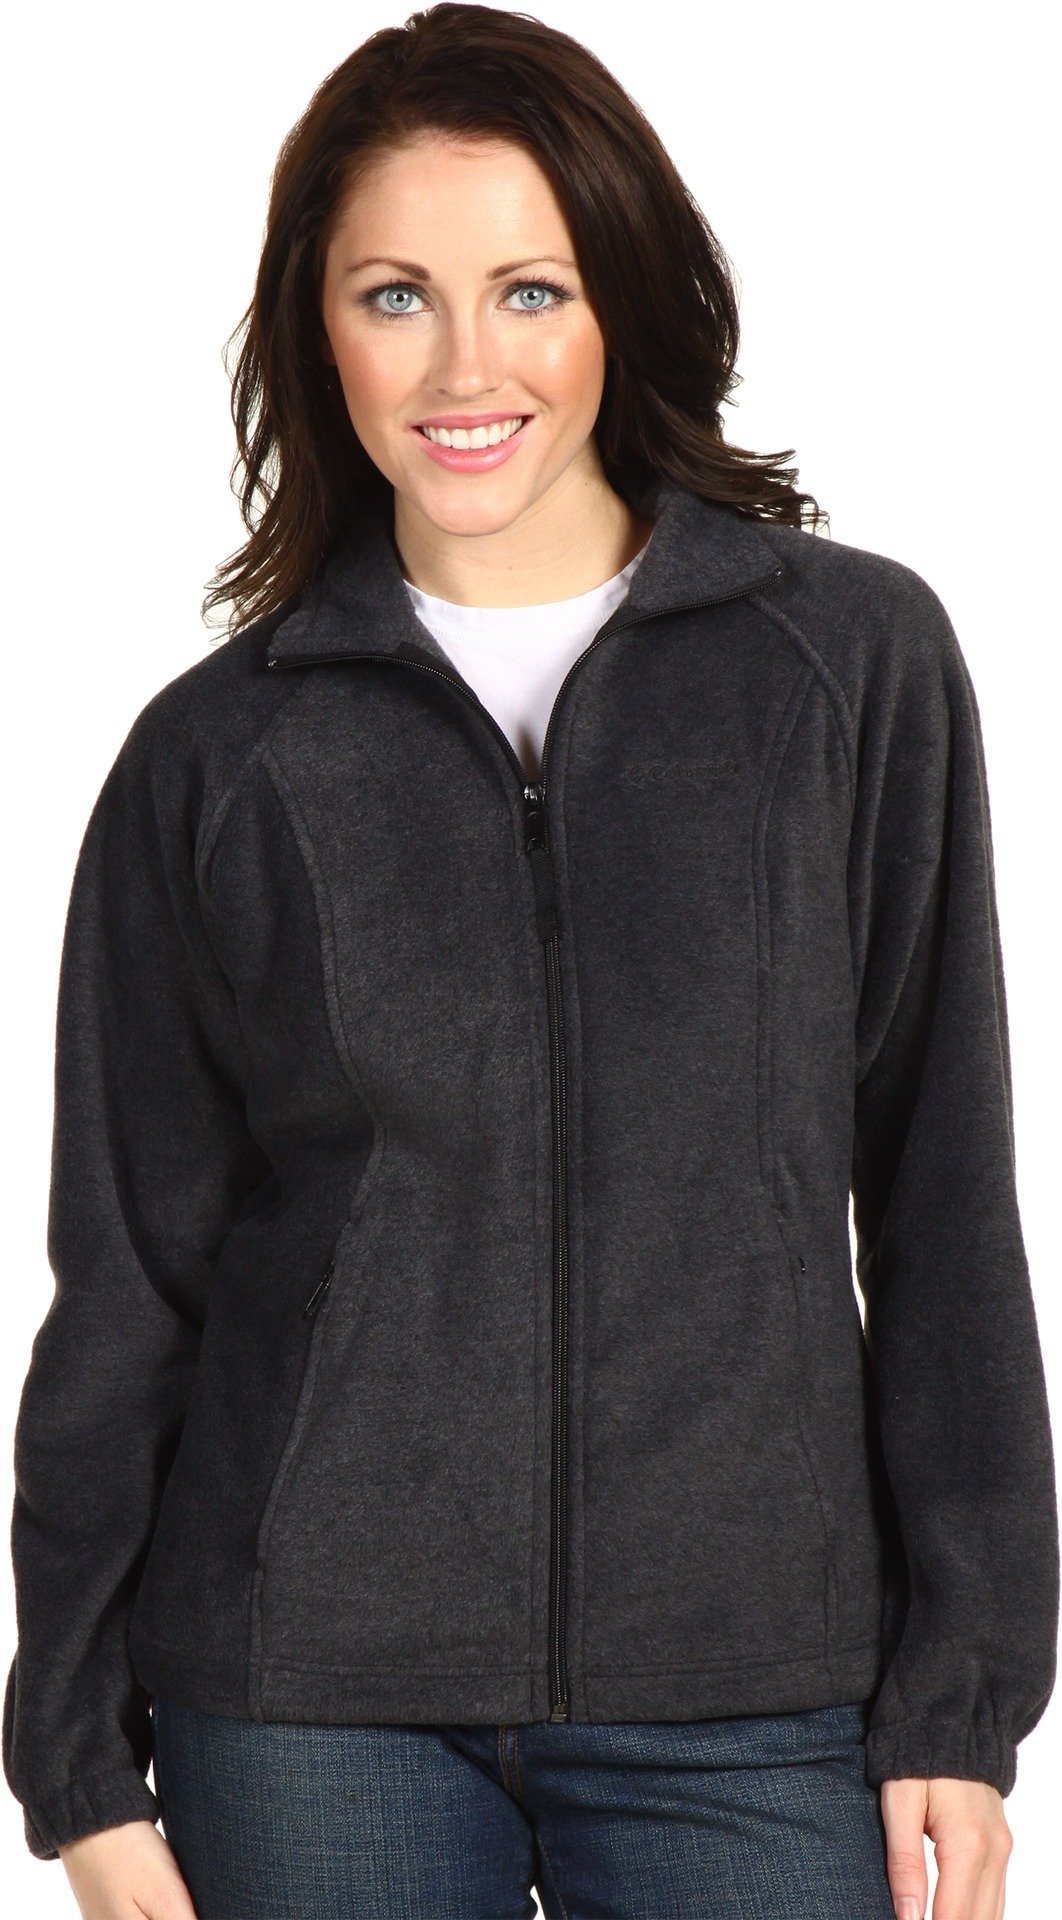 Columbia Women's Benton Springs Classic Fit Full Zip Soft Fleece Jacket, charcoal heather, L